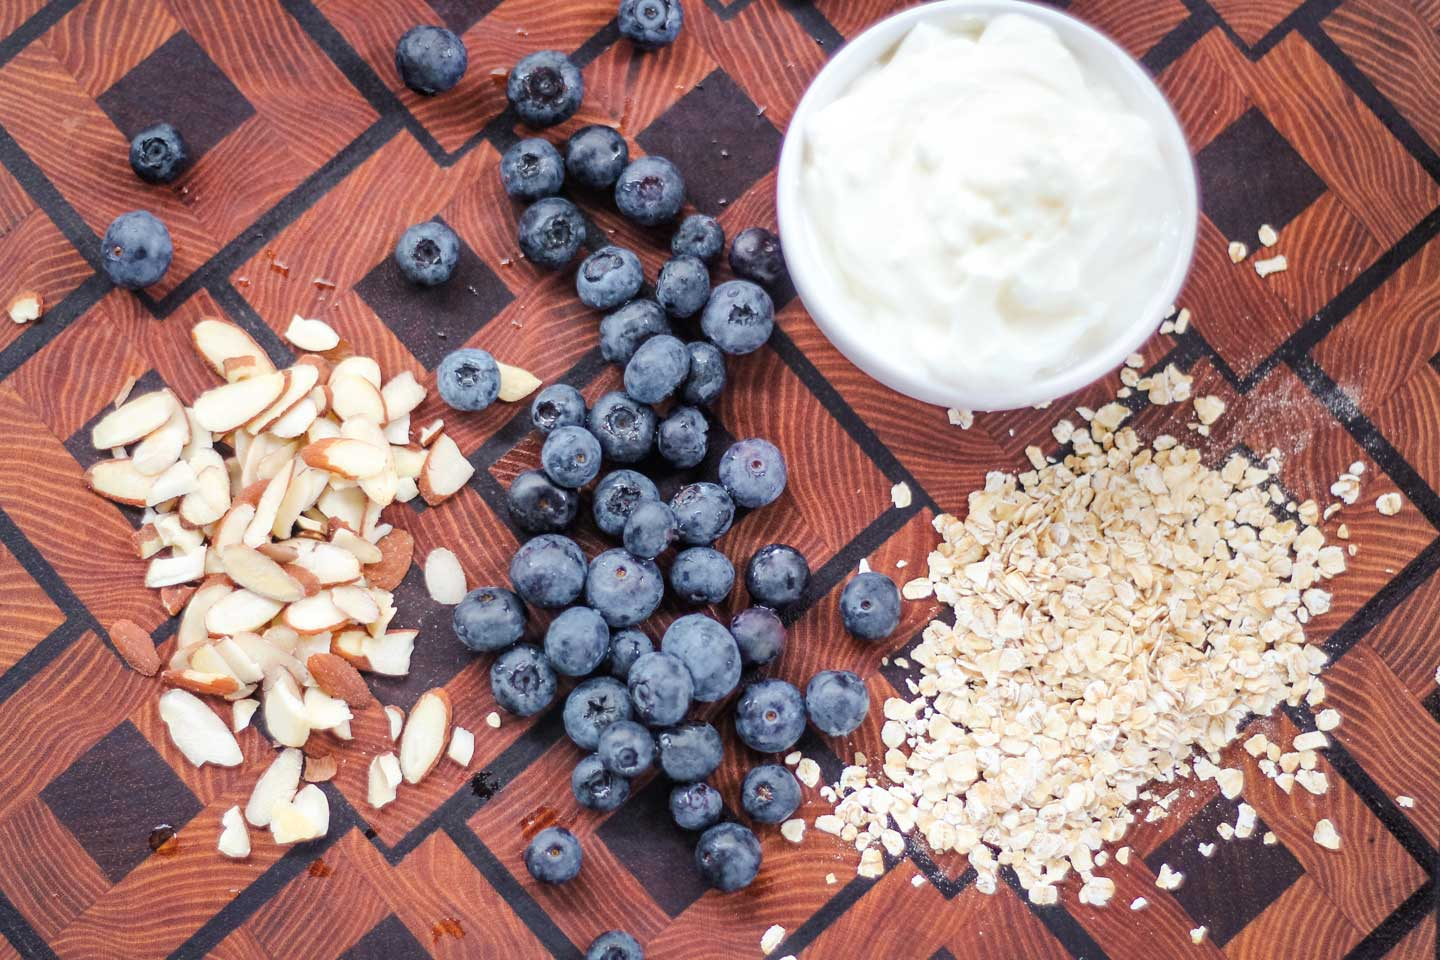 Some of the ingredients for this overnight oats recipe (sliced almonds, blueberries, oats, and Greek yogurt), arranged on a diamond-patterned cutting board, before starting to be mixed all together.